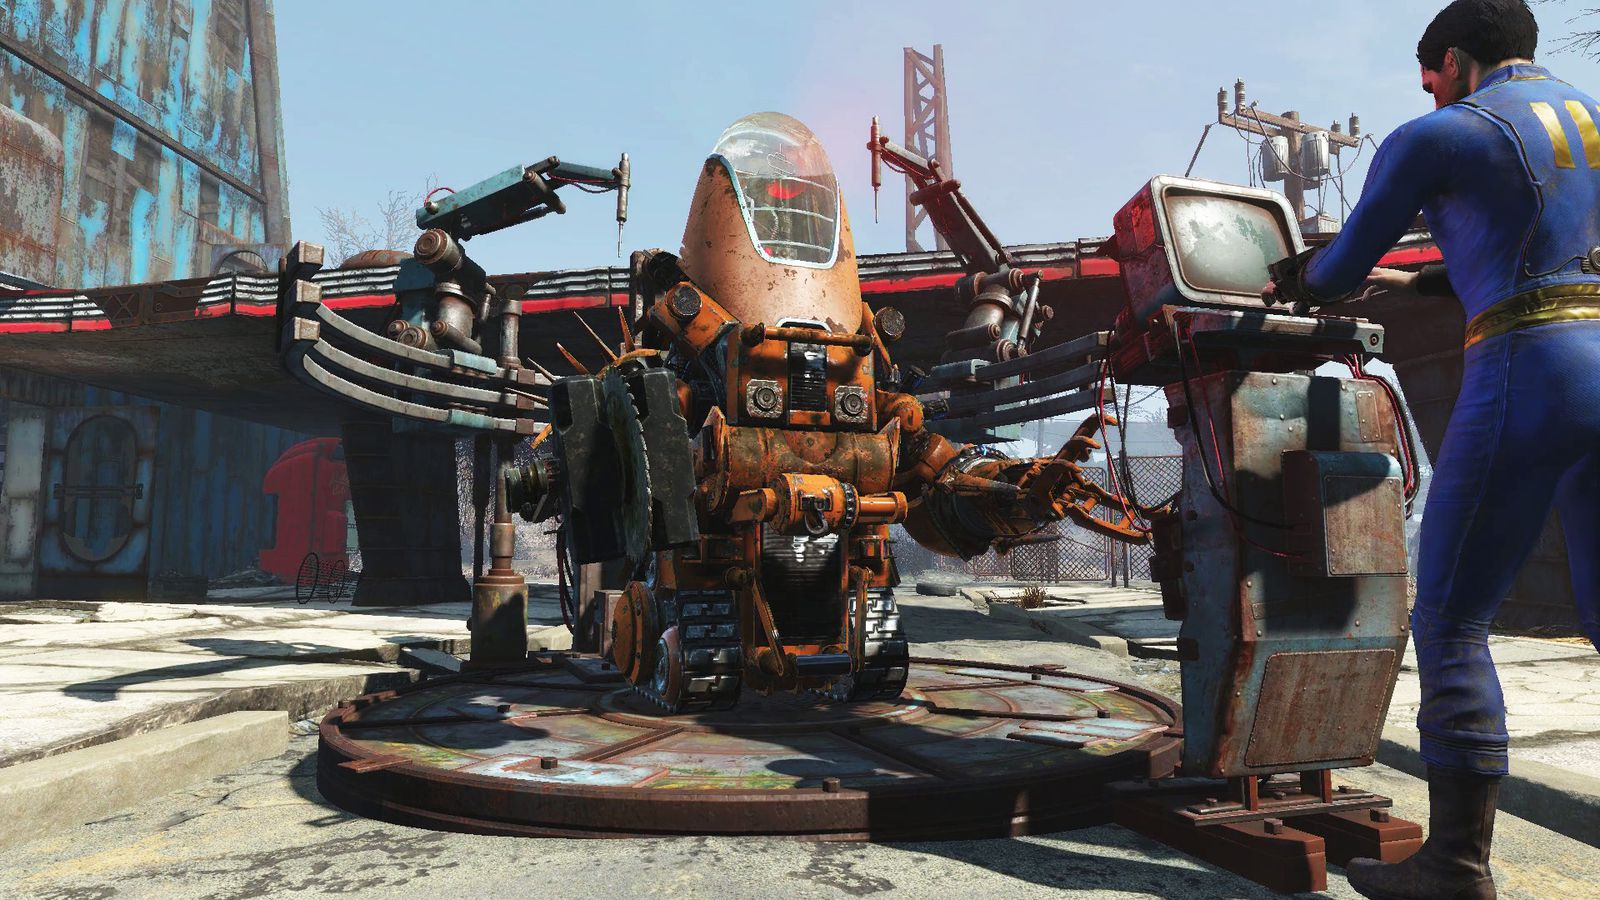 21 9 Fallout 4: Fallout 4 Season Pass For Xbox One Discounted Today; DLC